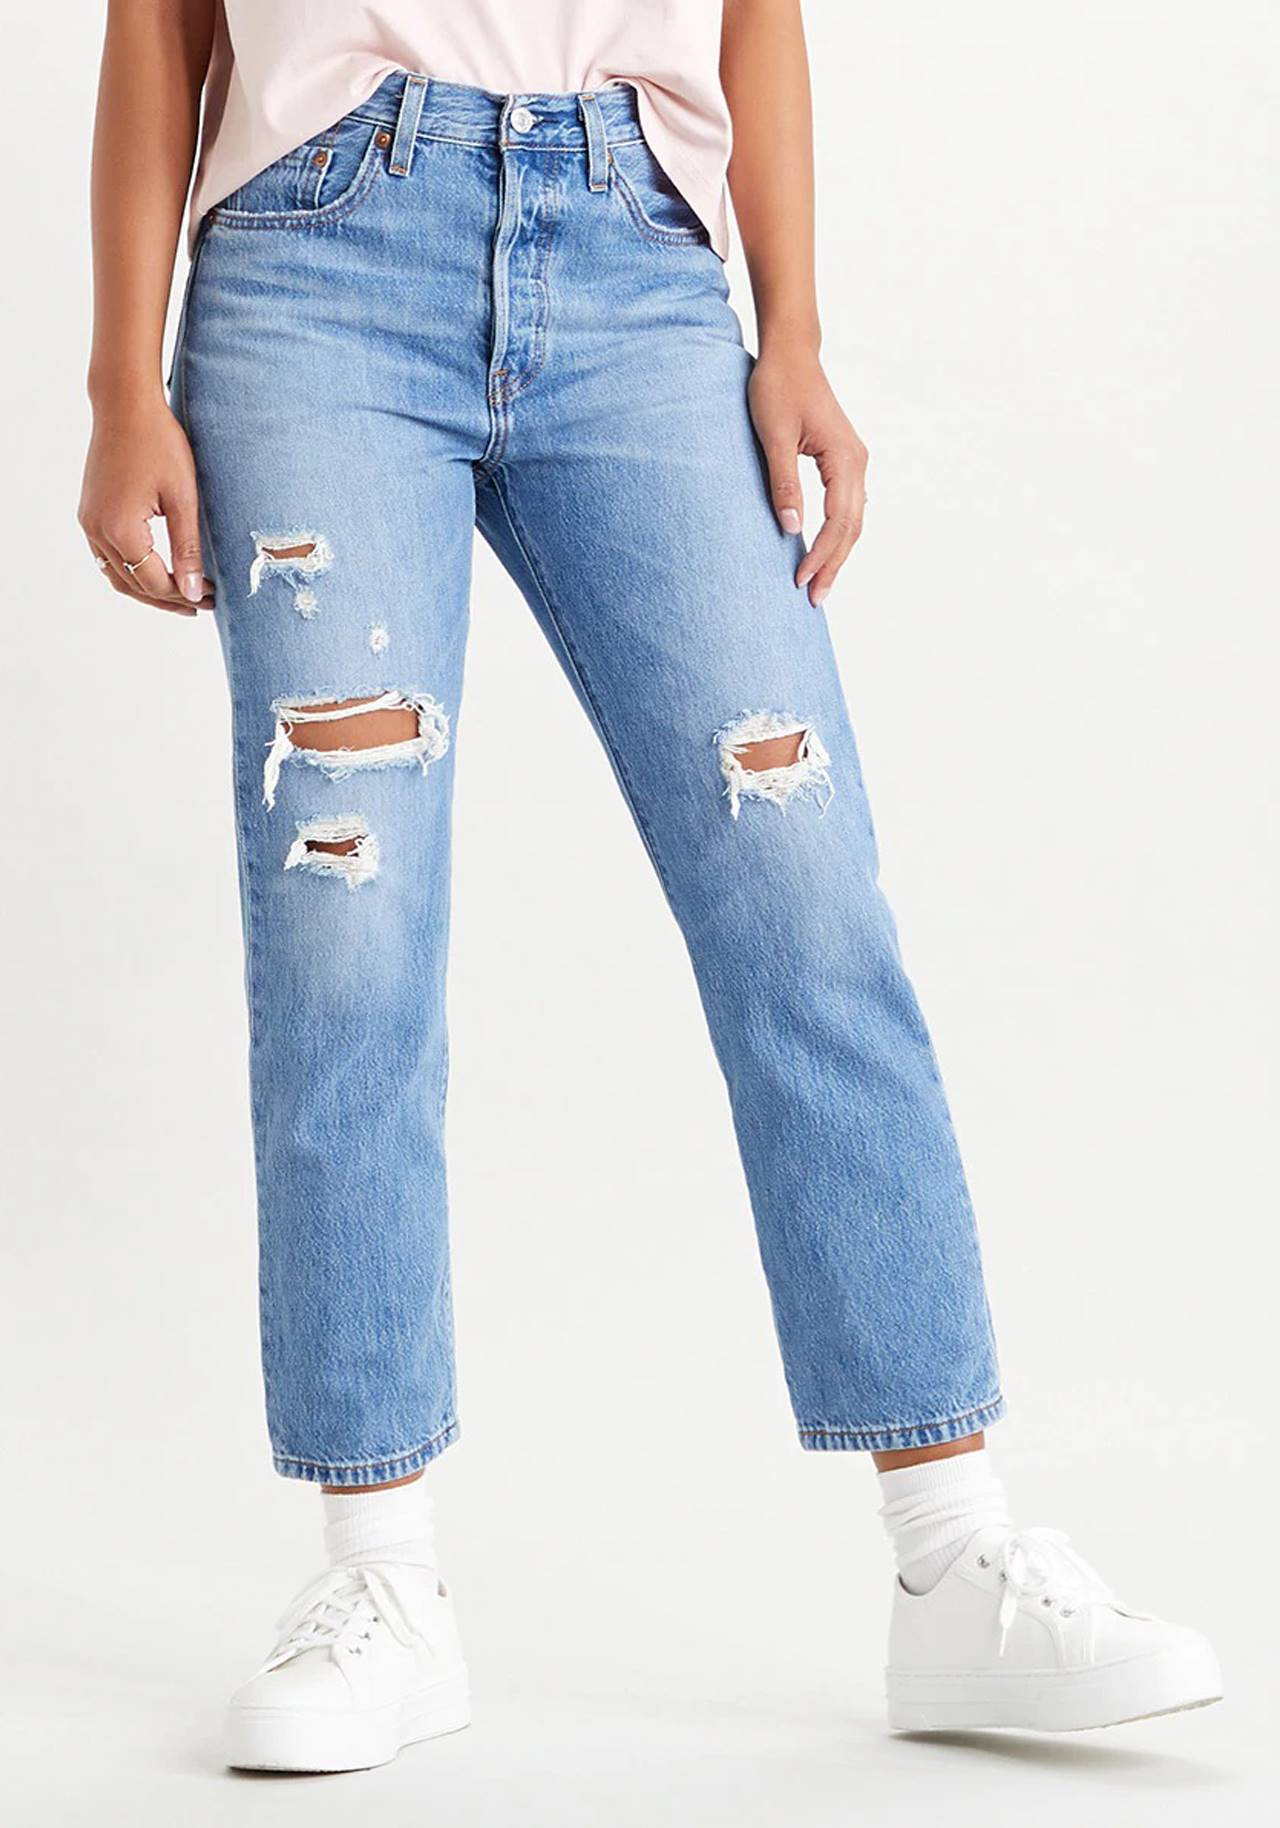 Jeans ripped rectos